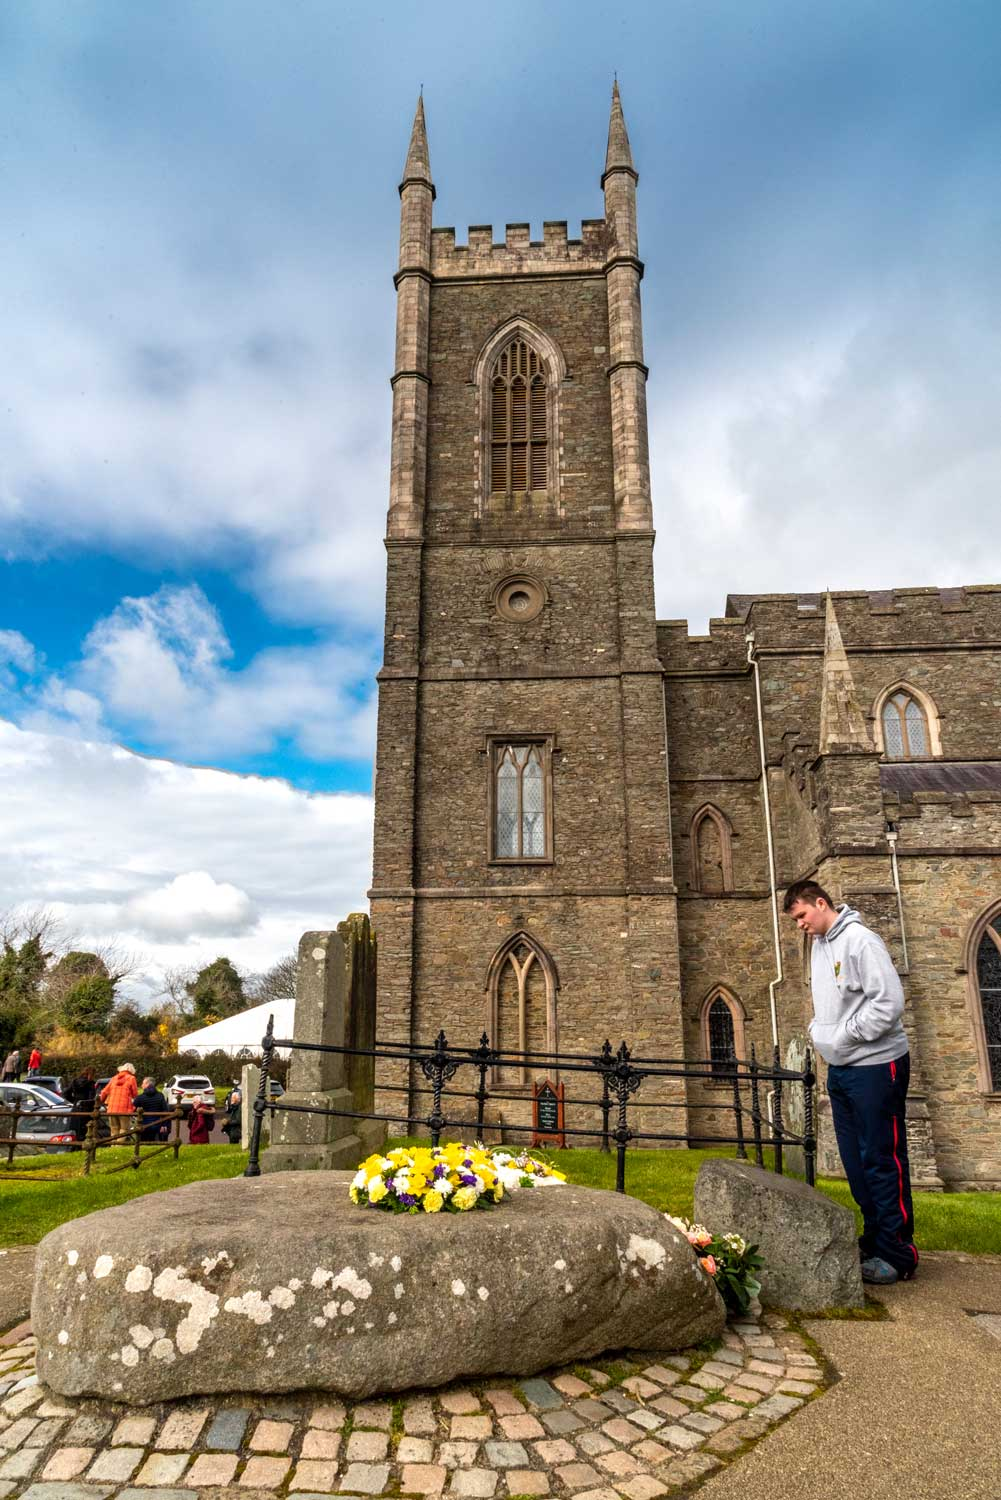 St Patrick's remains are believed to be buried here at Down Church of Ireland Cathedral, Downpatrick.